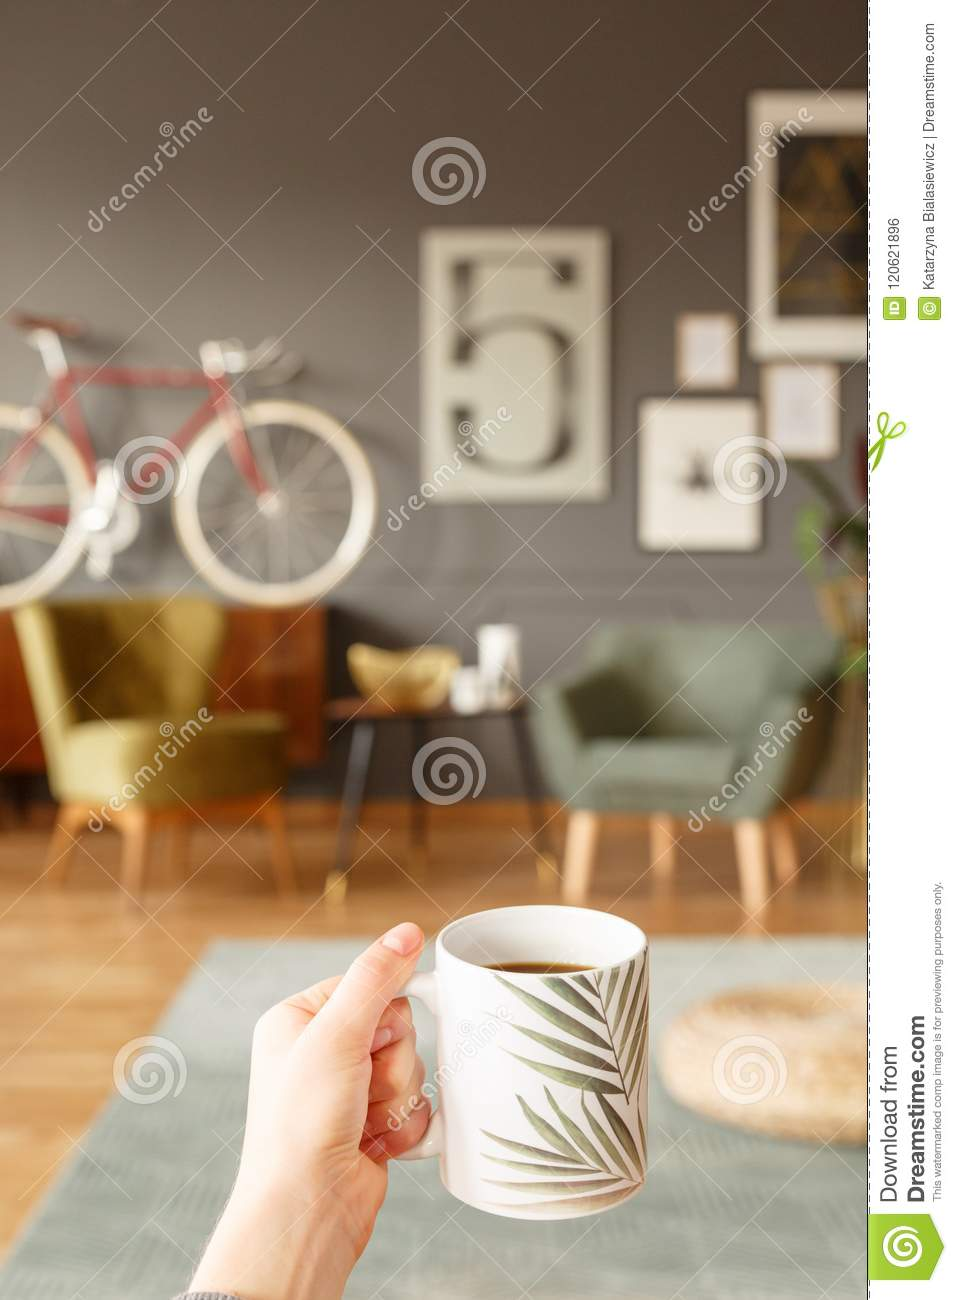 Cup In Hand In Room Stock Photo Image Of Home Background 120621896